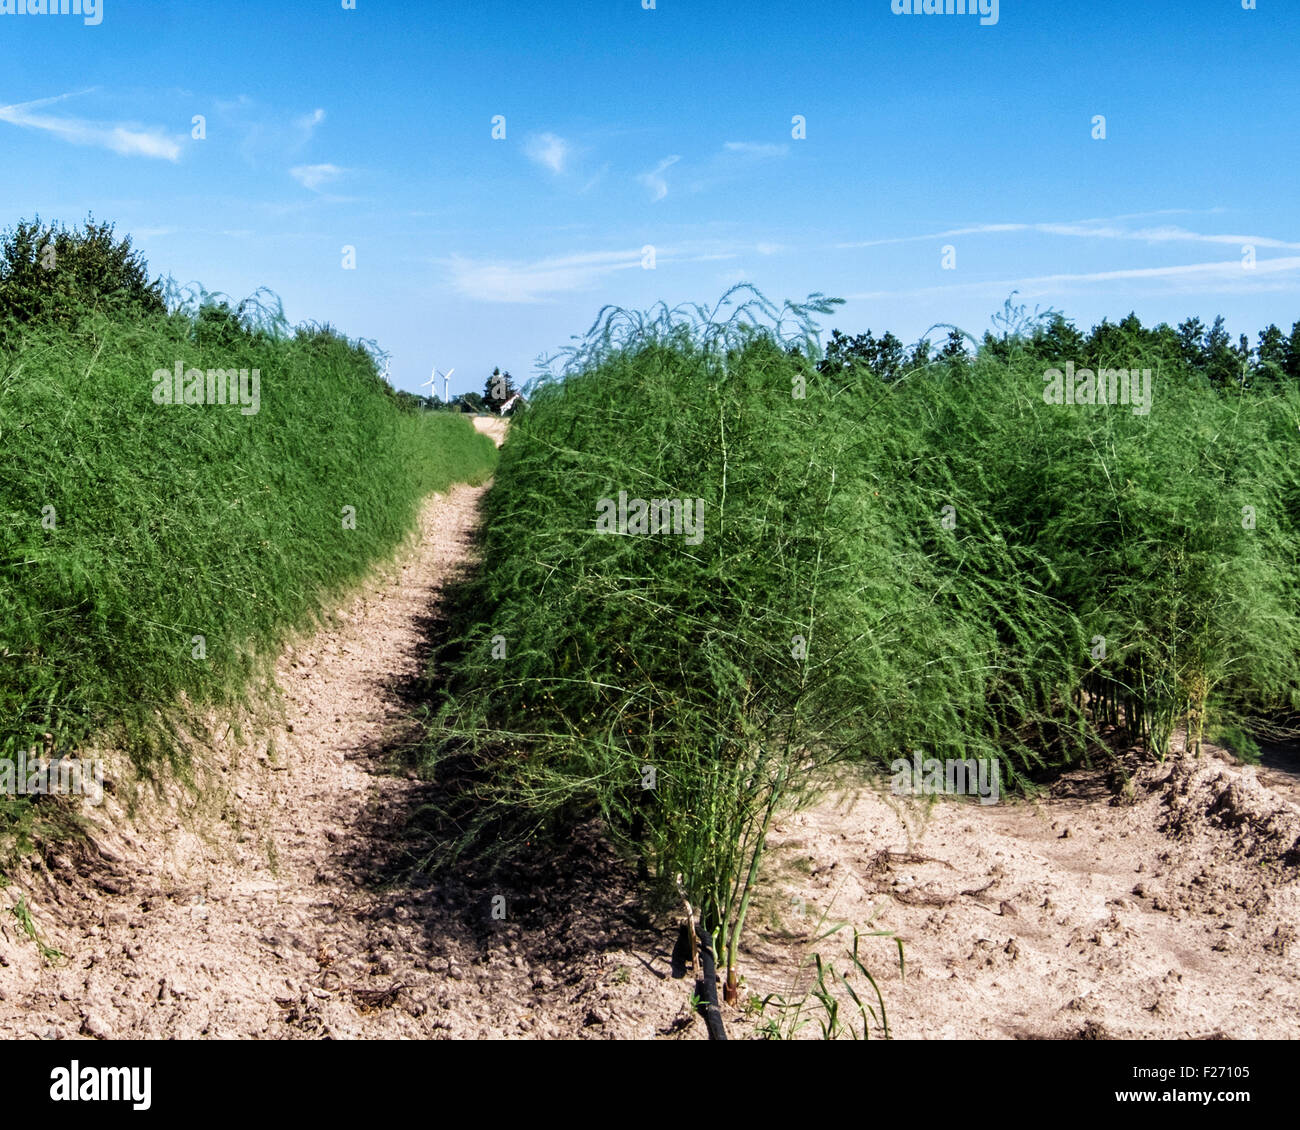 Farmland, Rows of asparagus in field and blue Summer sky, Brandenburg, Germany - Stock Image